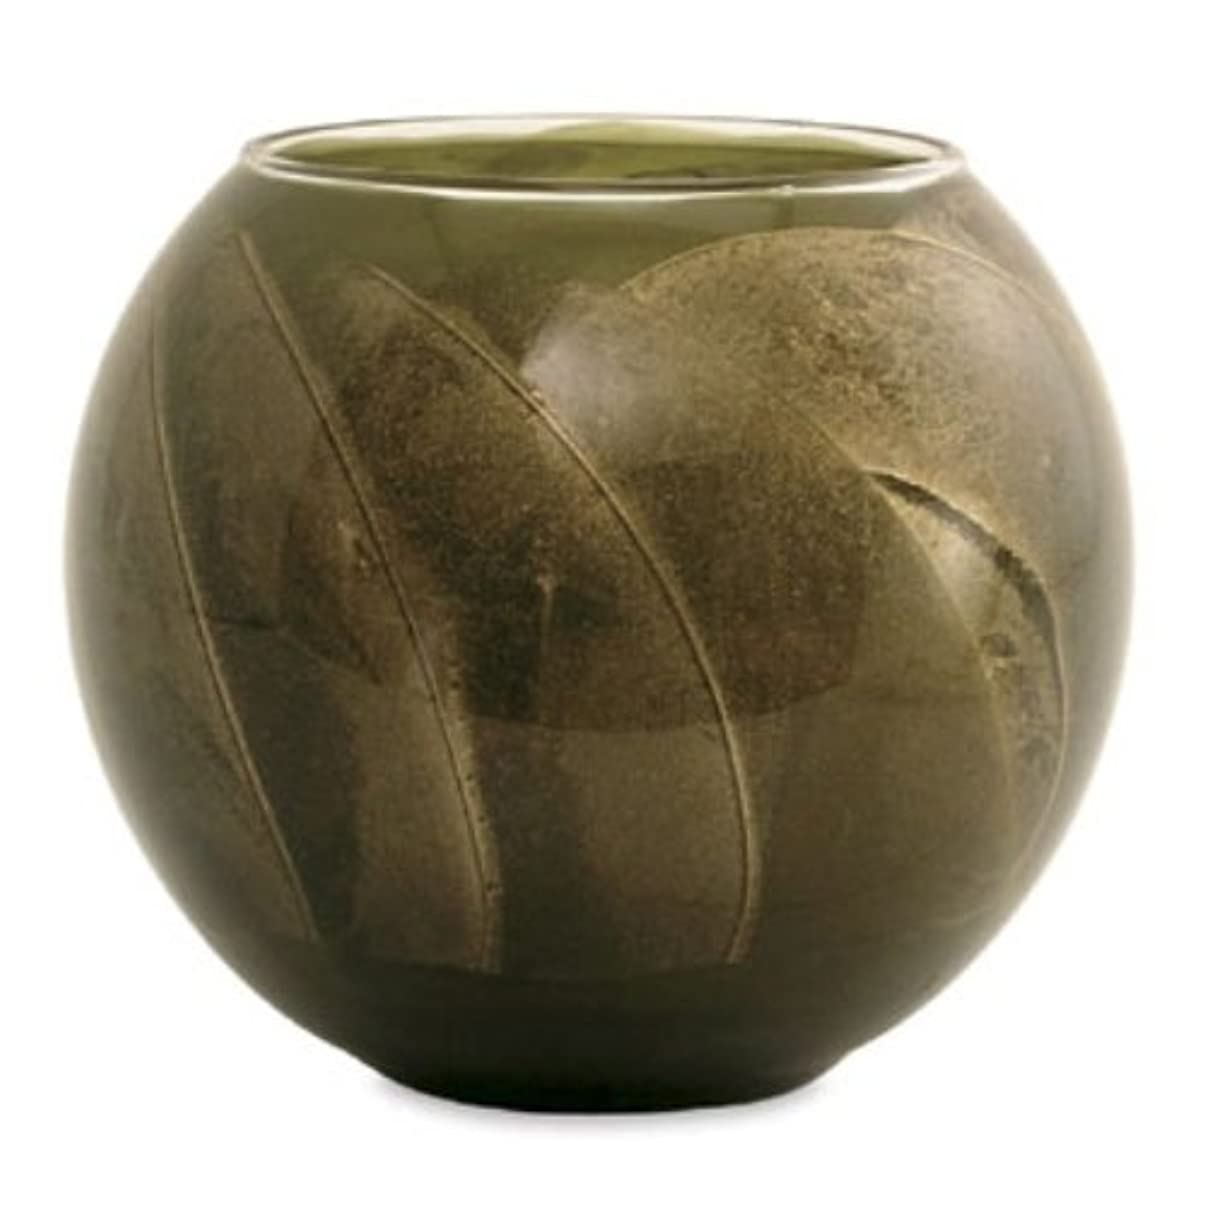 女優レスリング食事Northern Lights Candles Esque Polished Globe - 4 inch Olive by Northern Lights Candles [並行輸入品]